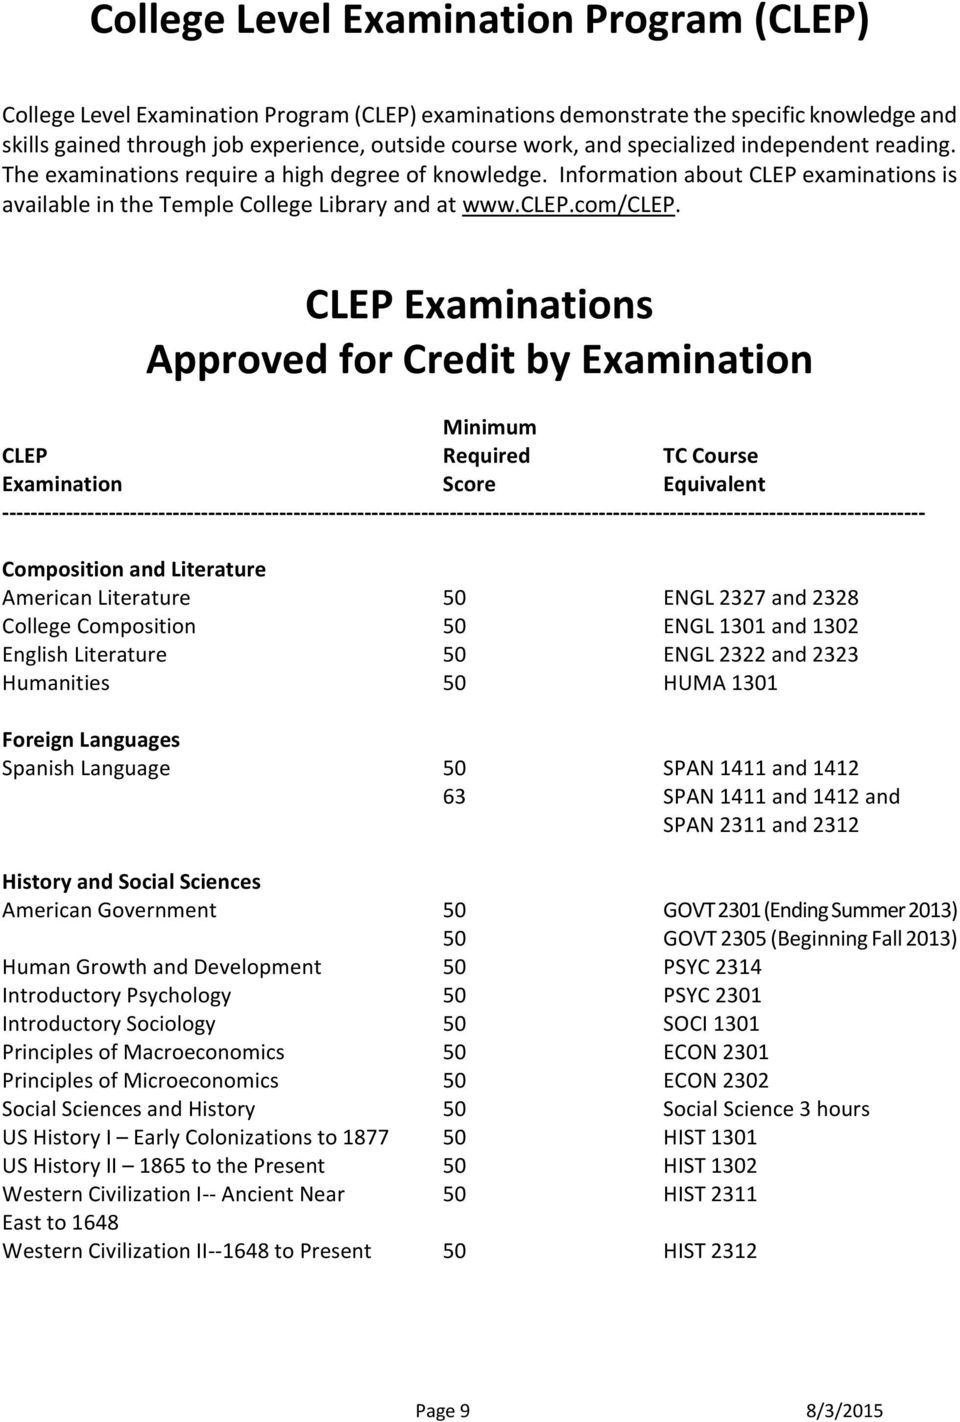 CLEP Examinations Approved for Credit by Examination Minimum CLEP Required TC Course Examination Score Equivalent